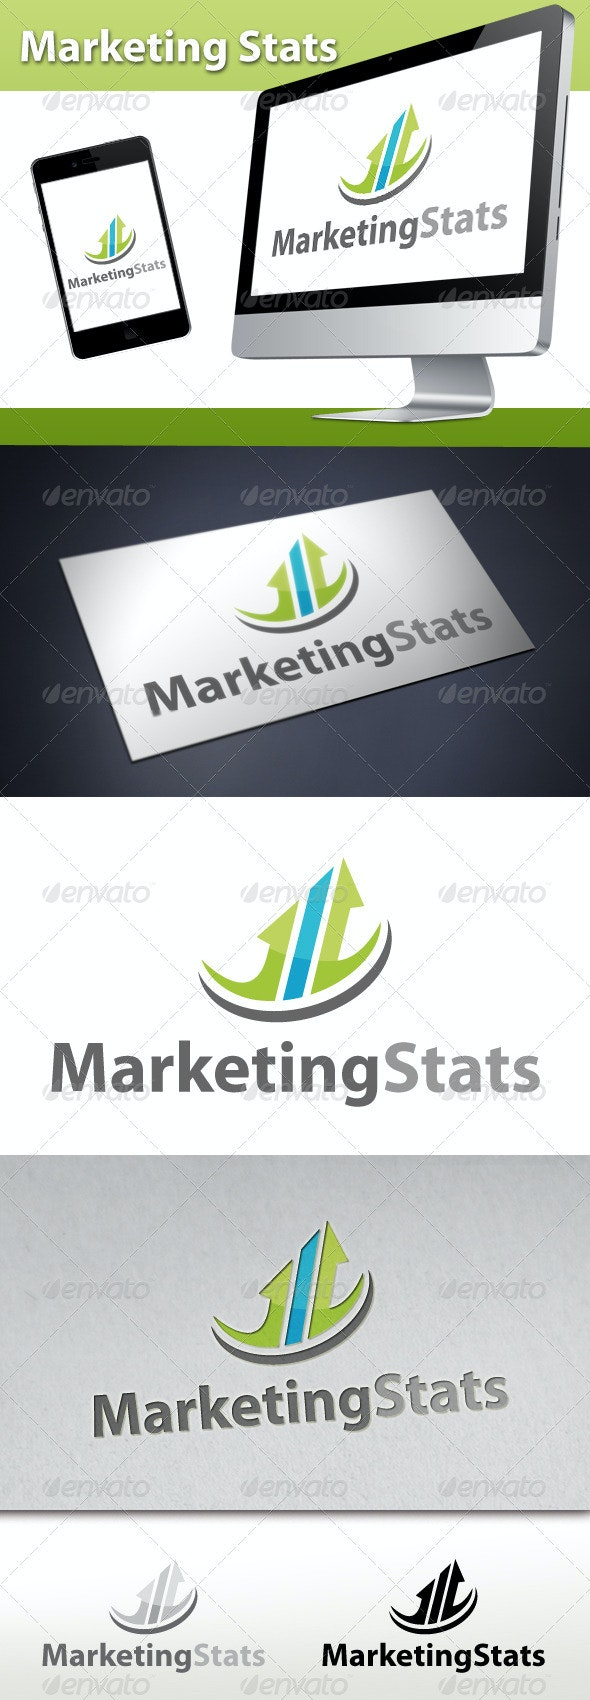 Marketing Stats Logo 1 - Symbols Logo Templates